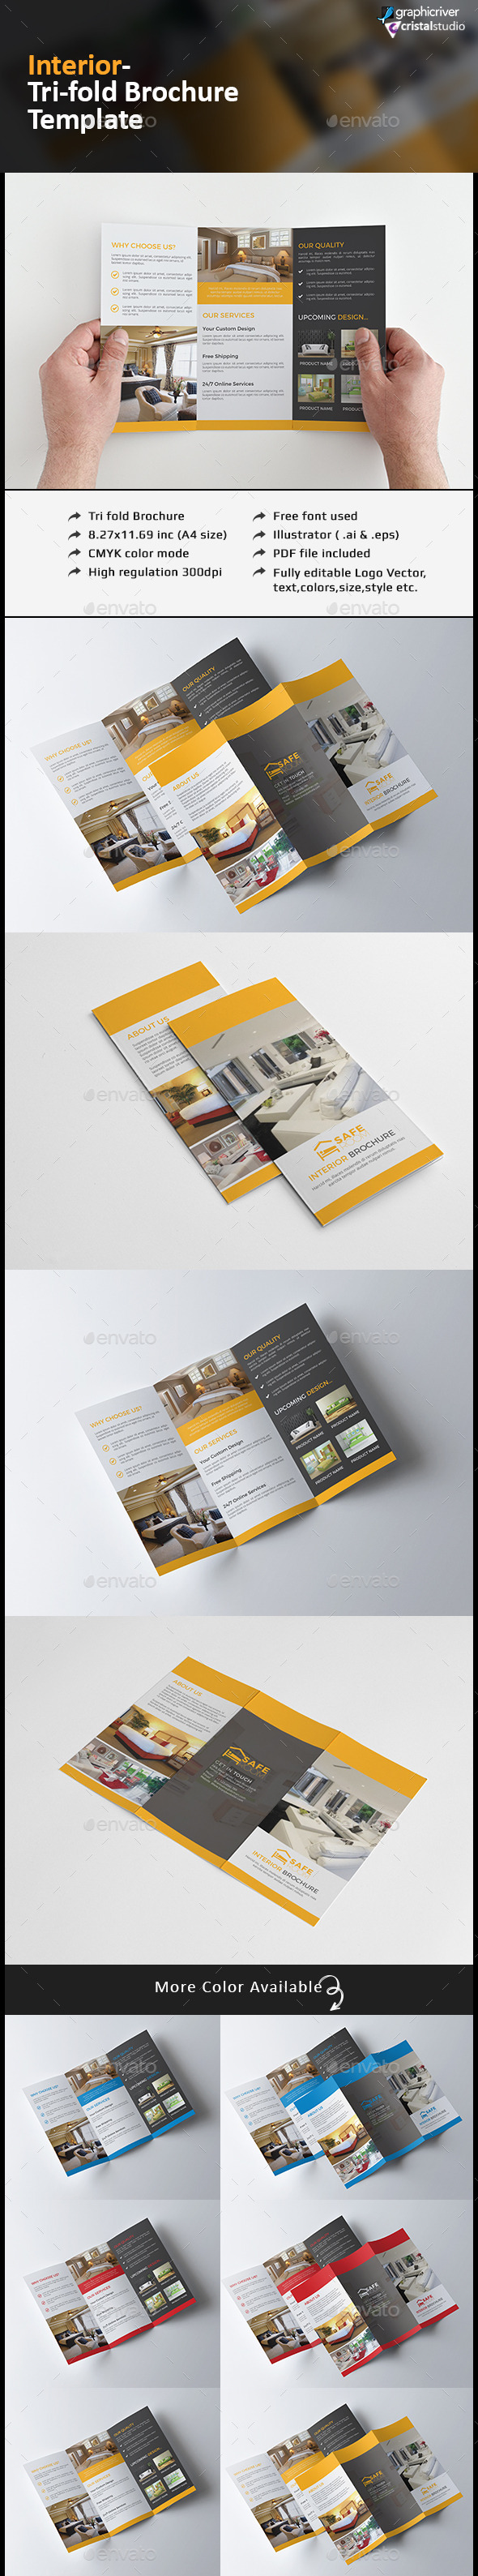 Interior Tri fold Brochure - Corporate Brochures